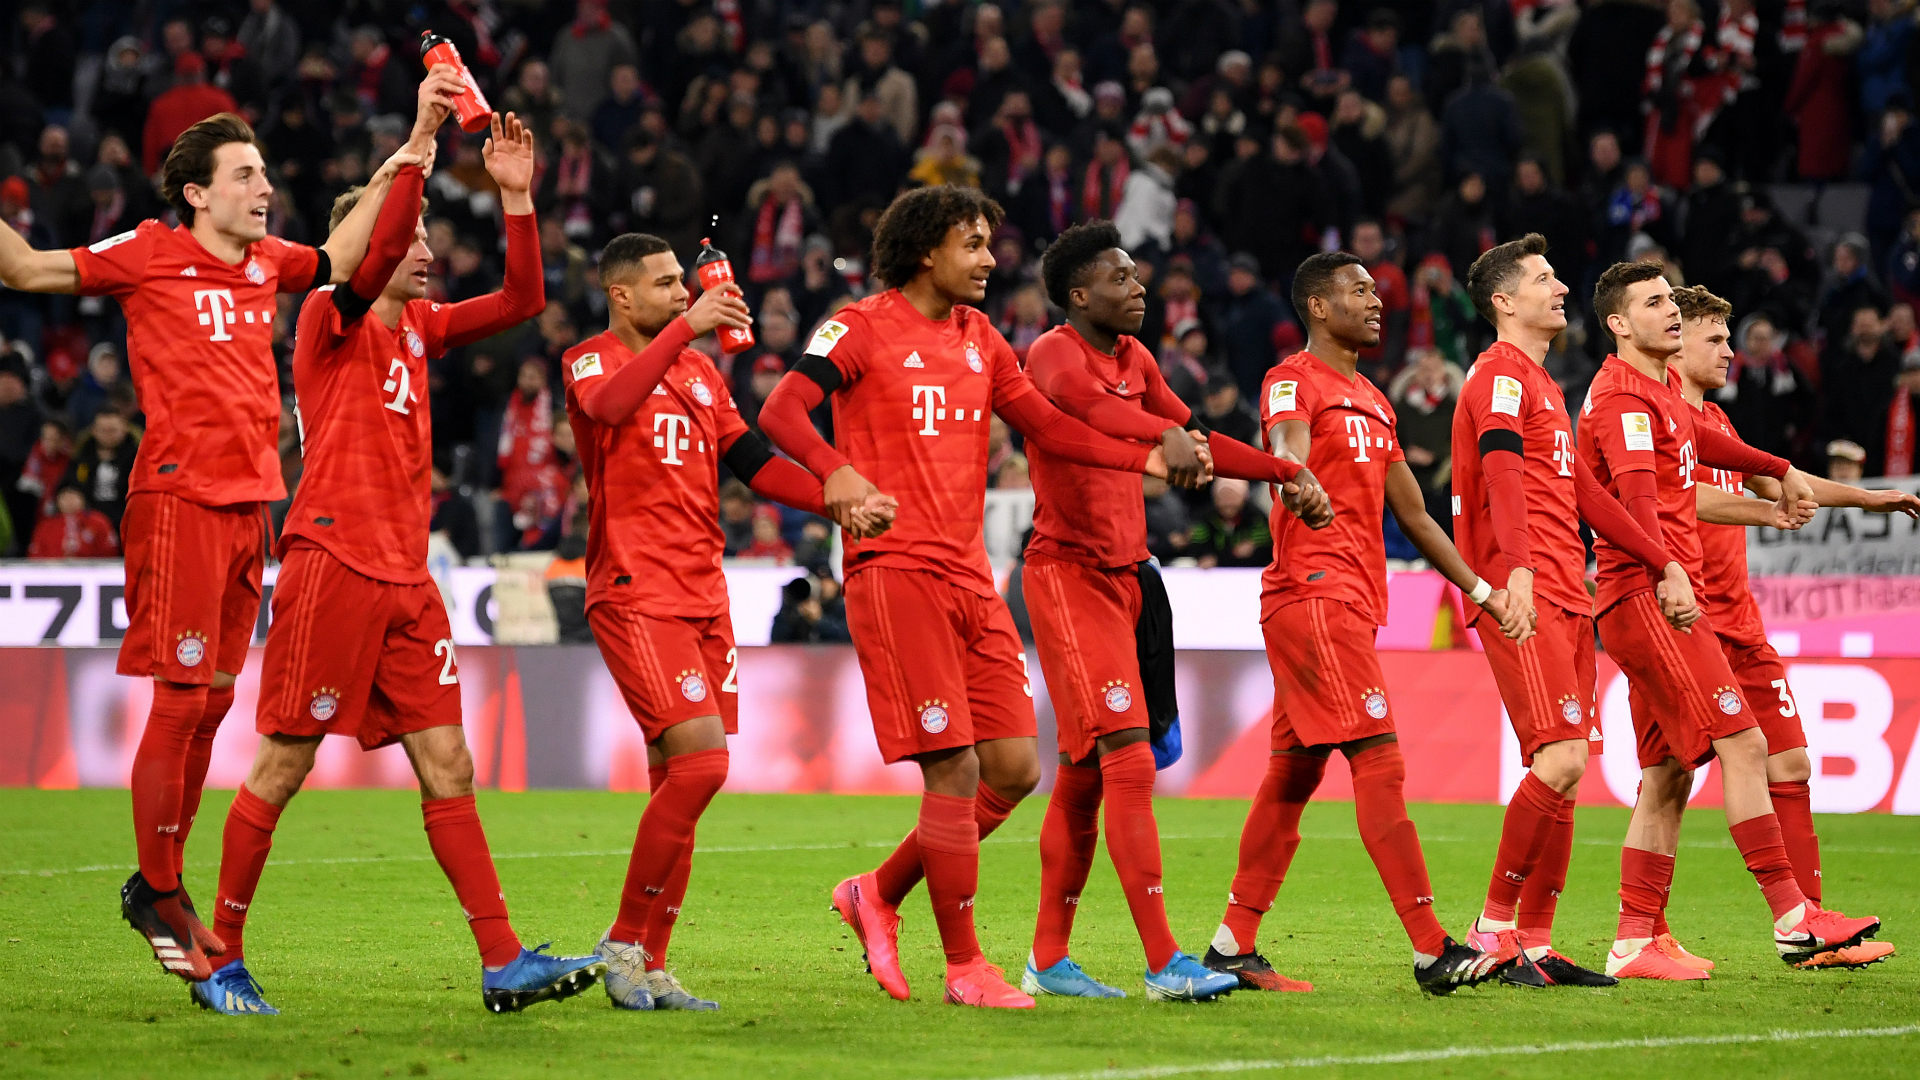 Neuer 'relieved' after Flick's Bayern overcome lowly Paderborn